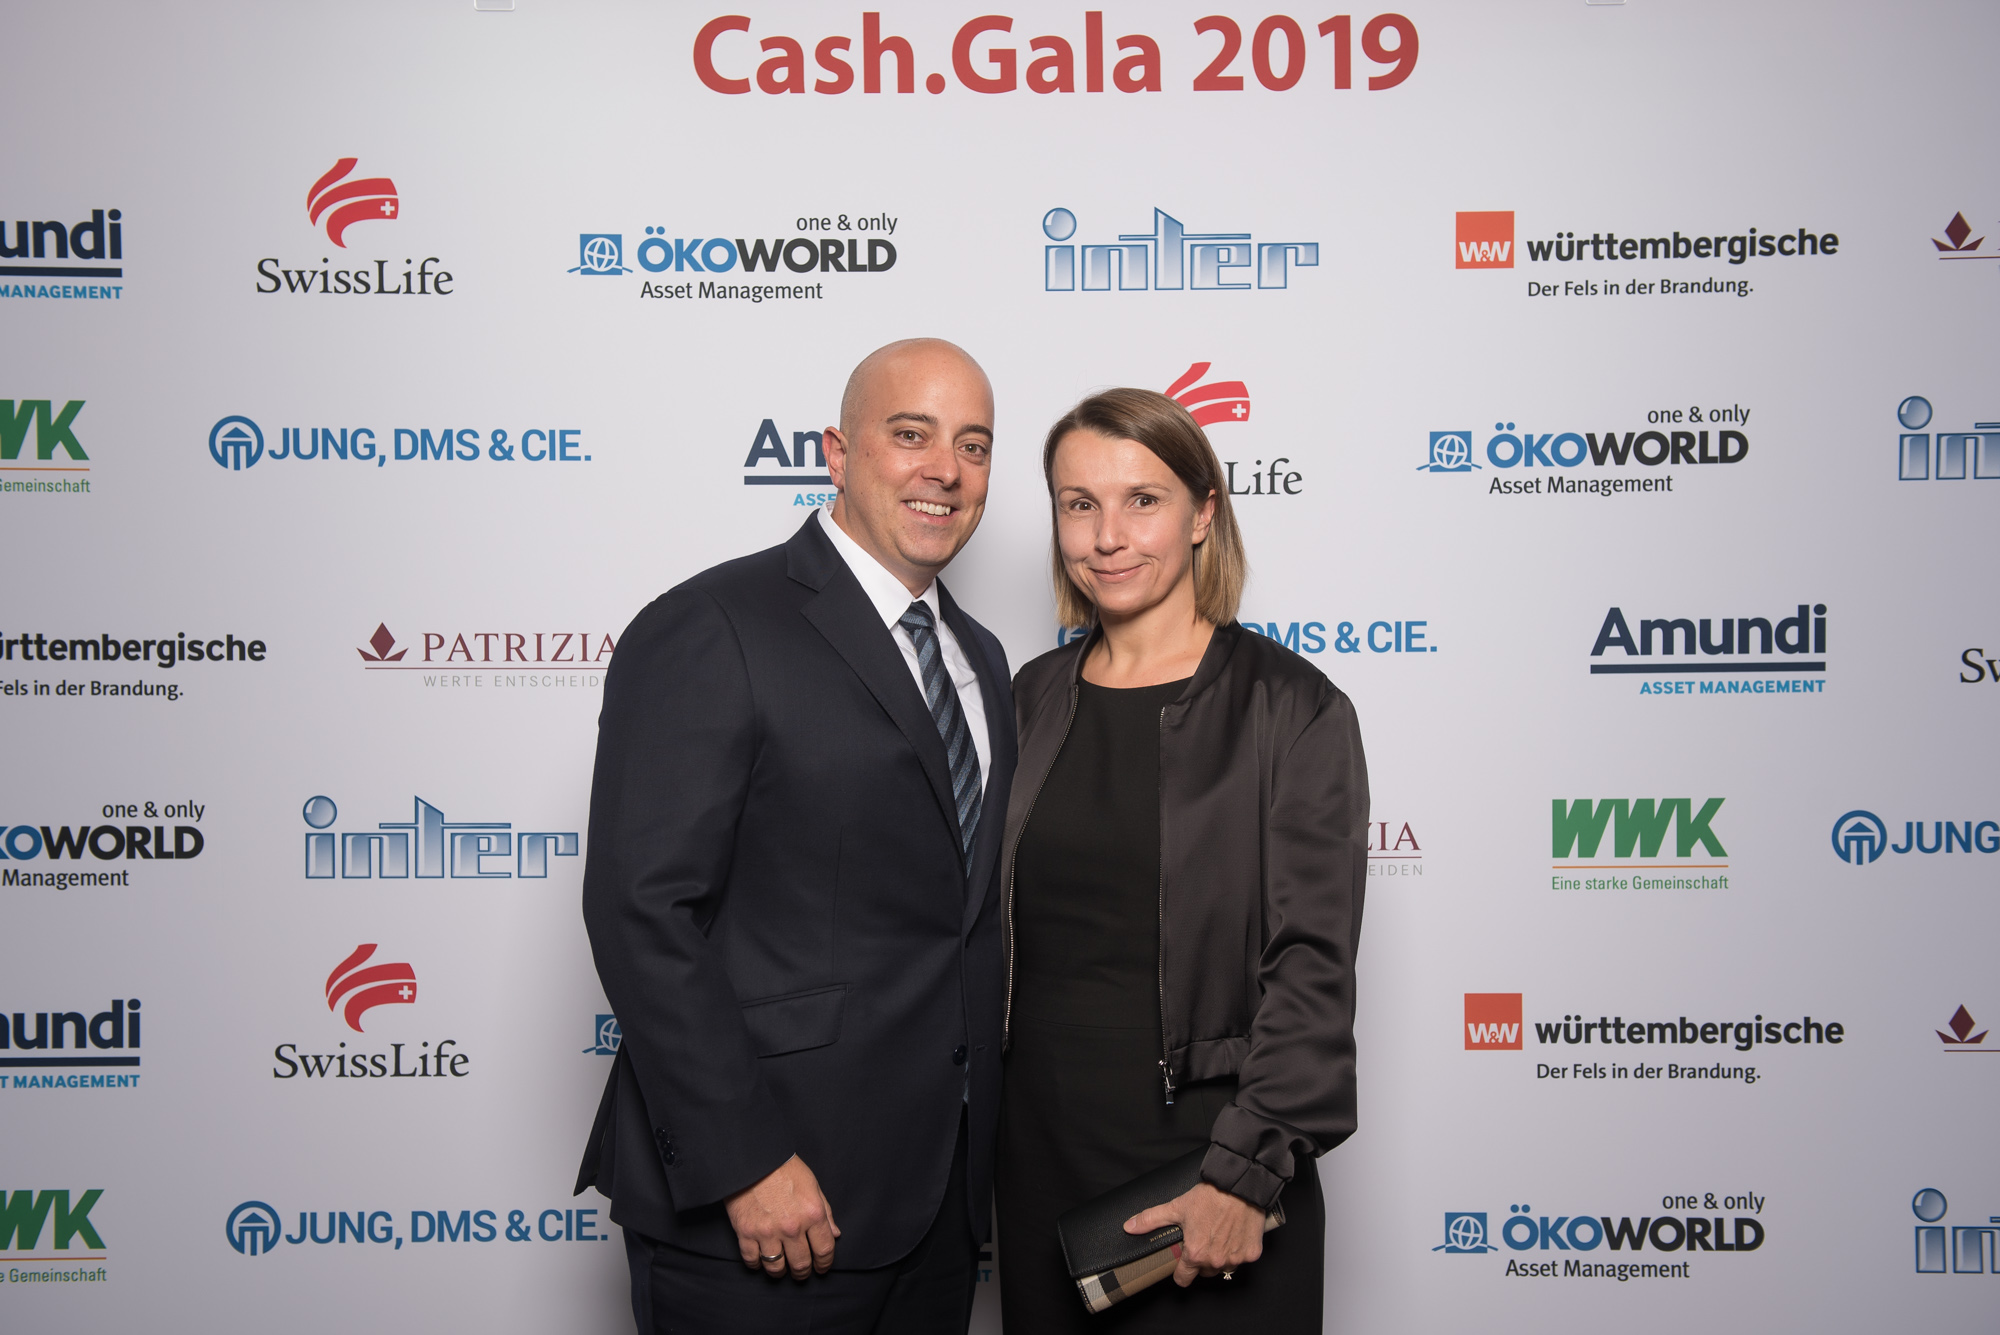 CashGala 2019 0067 AM DSC7143 in Cash.Gala 2019